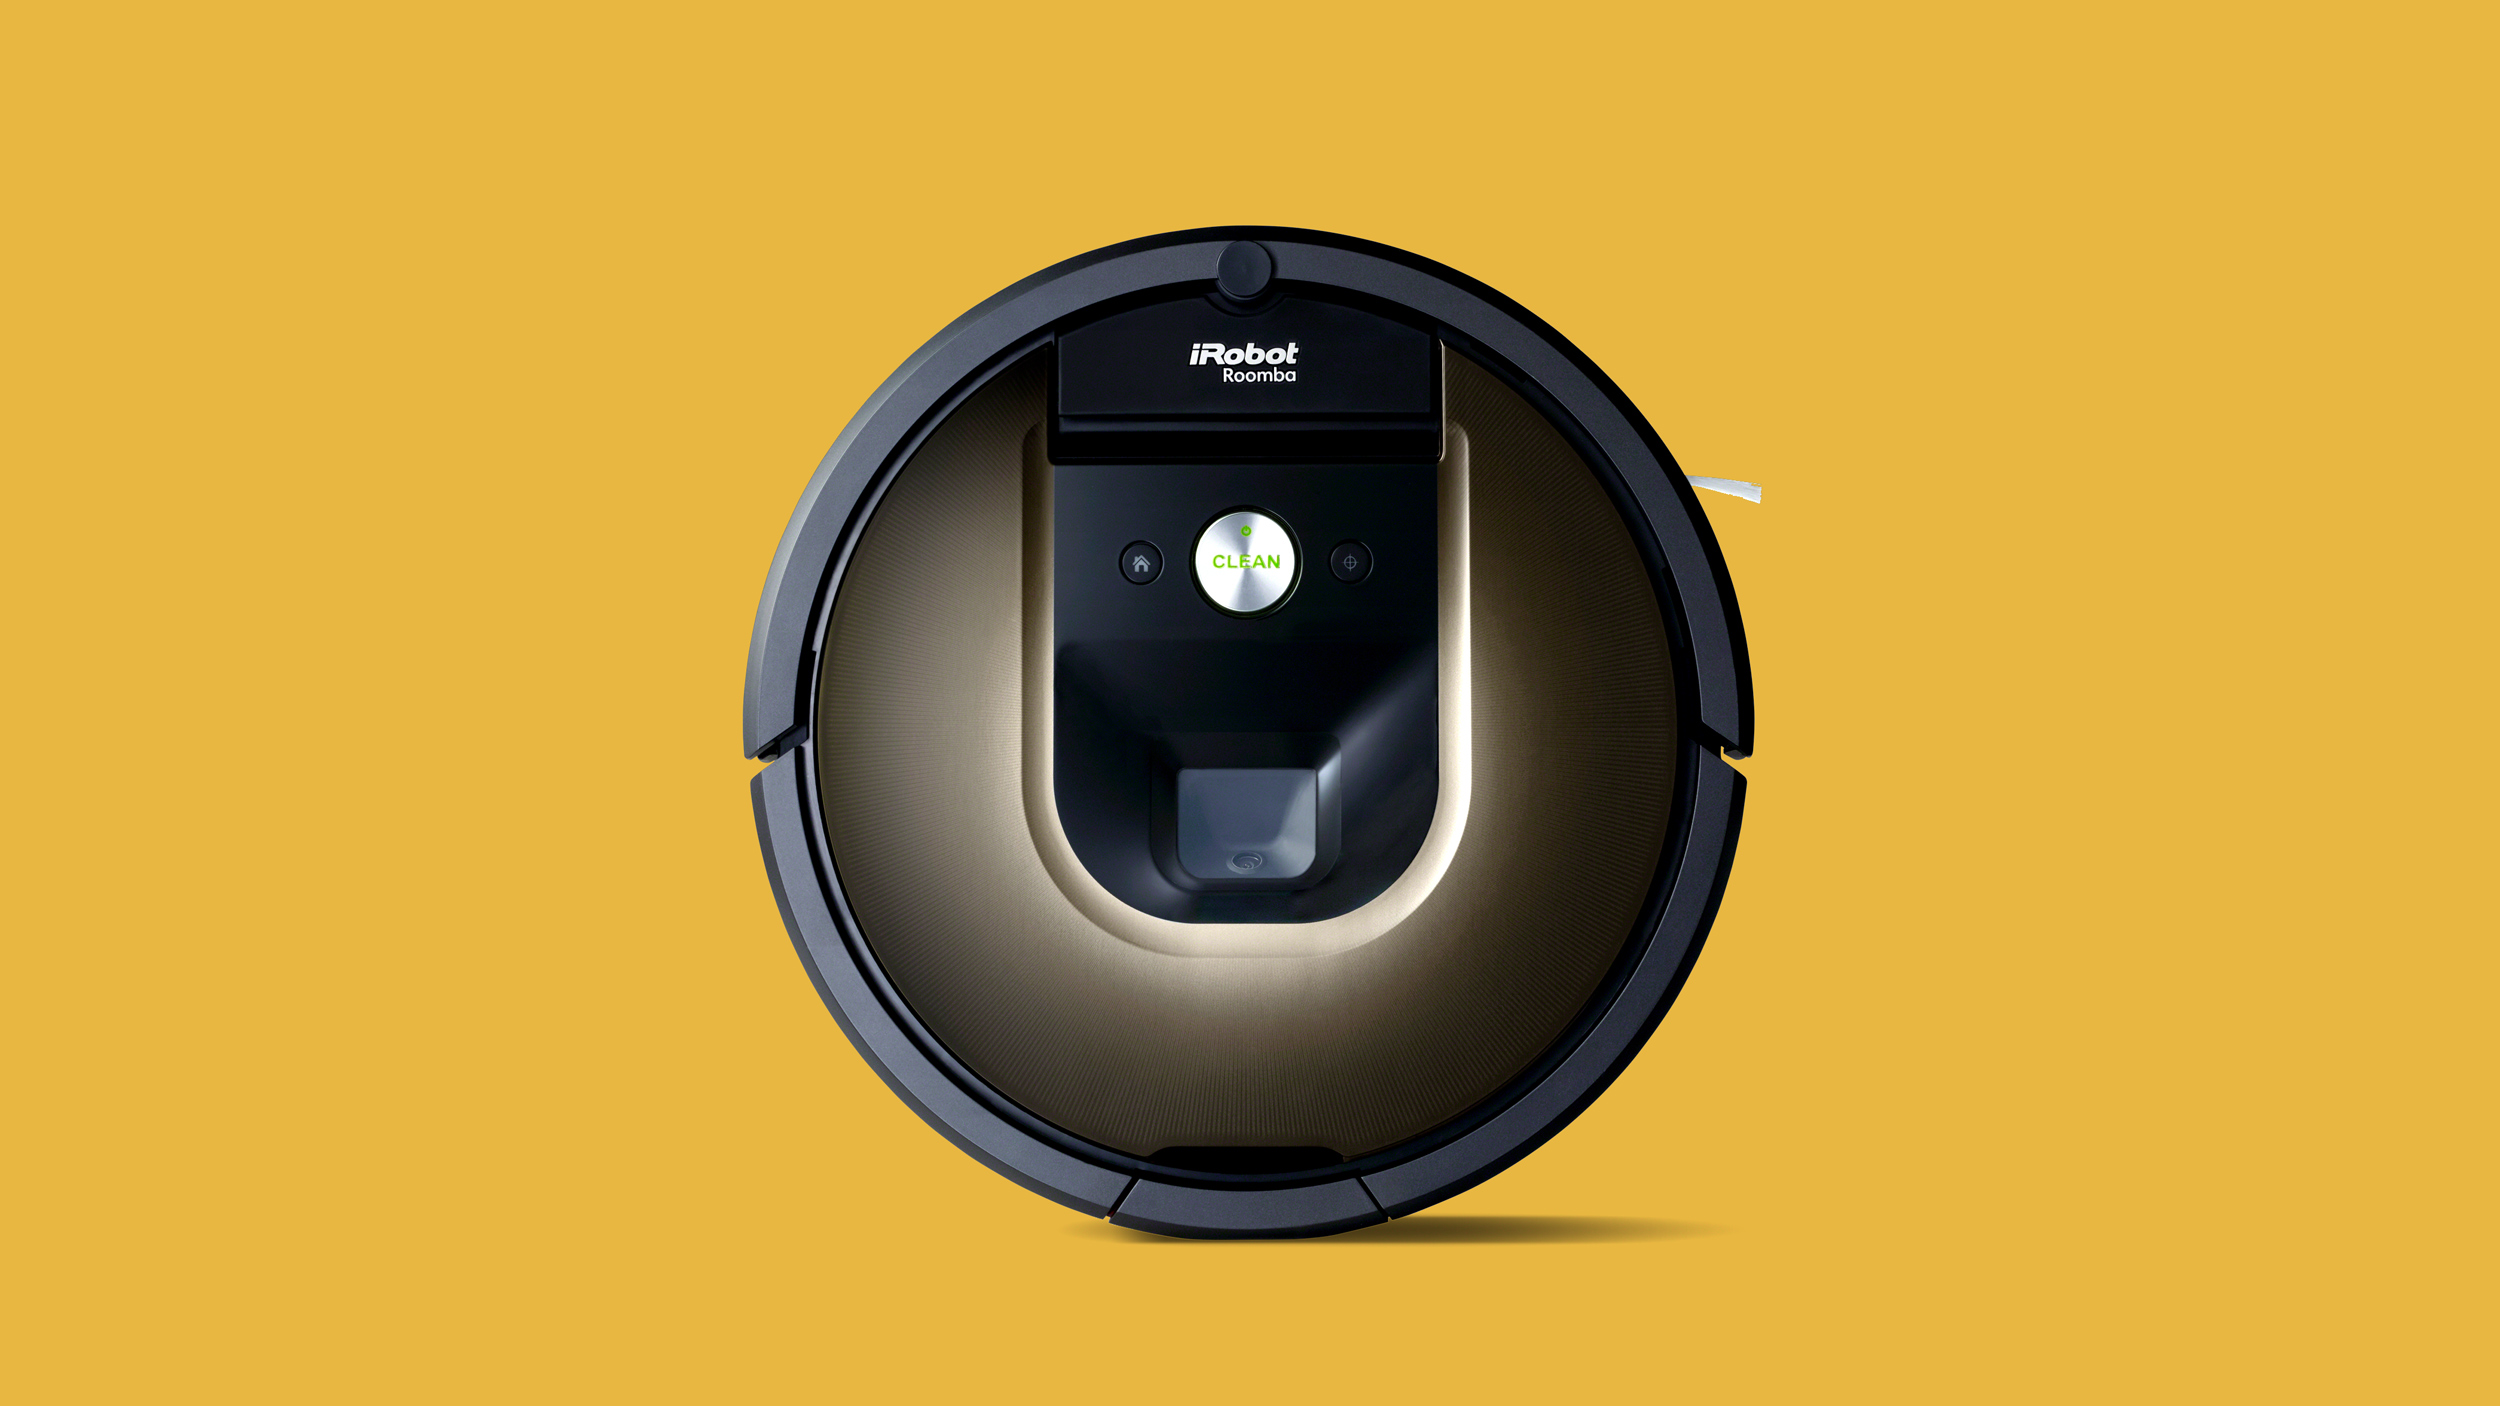 Your iRobot Roomba Will Soon Find Wi-Fi Dead Zones, Weak Spots